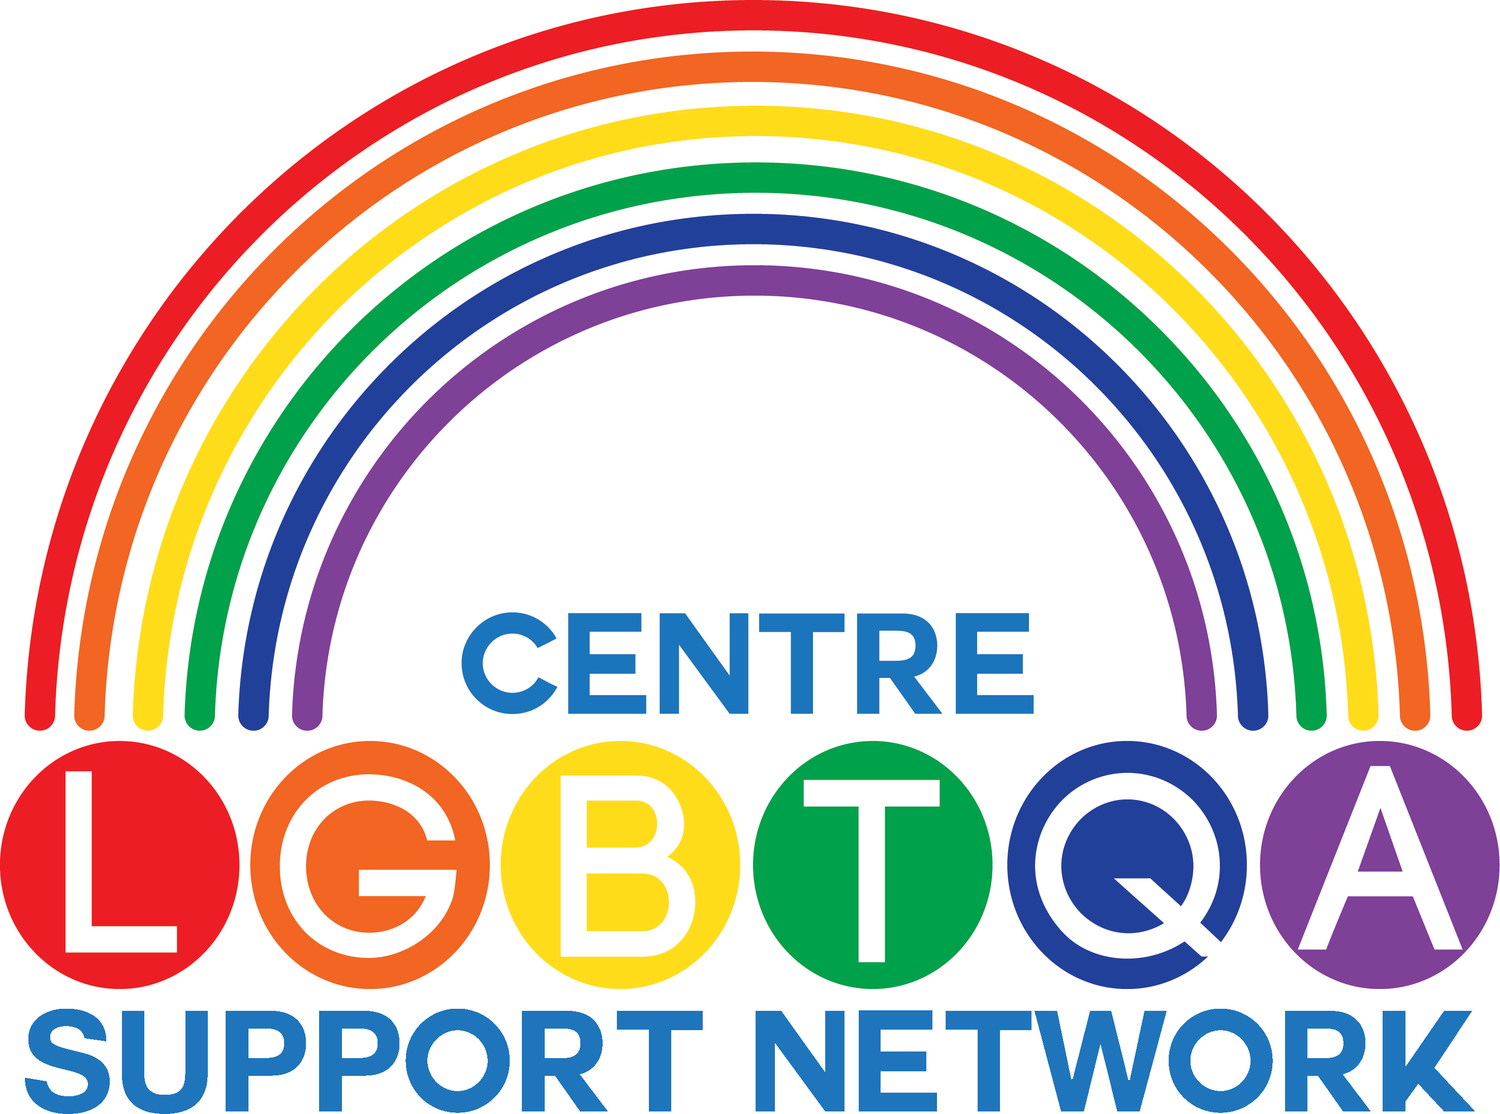 Centre LGBTQA Support Network